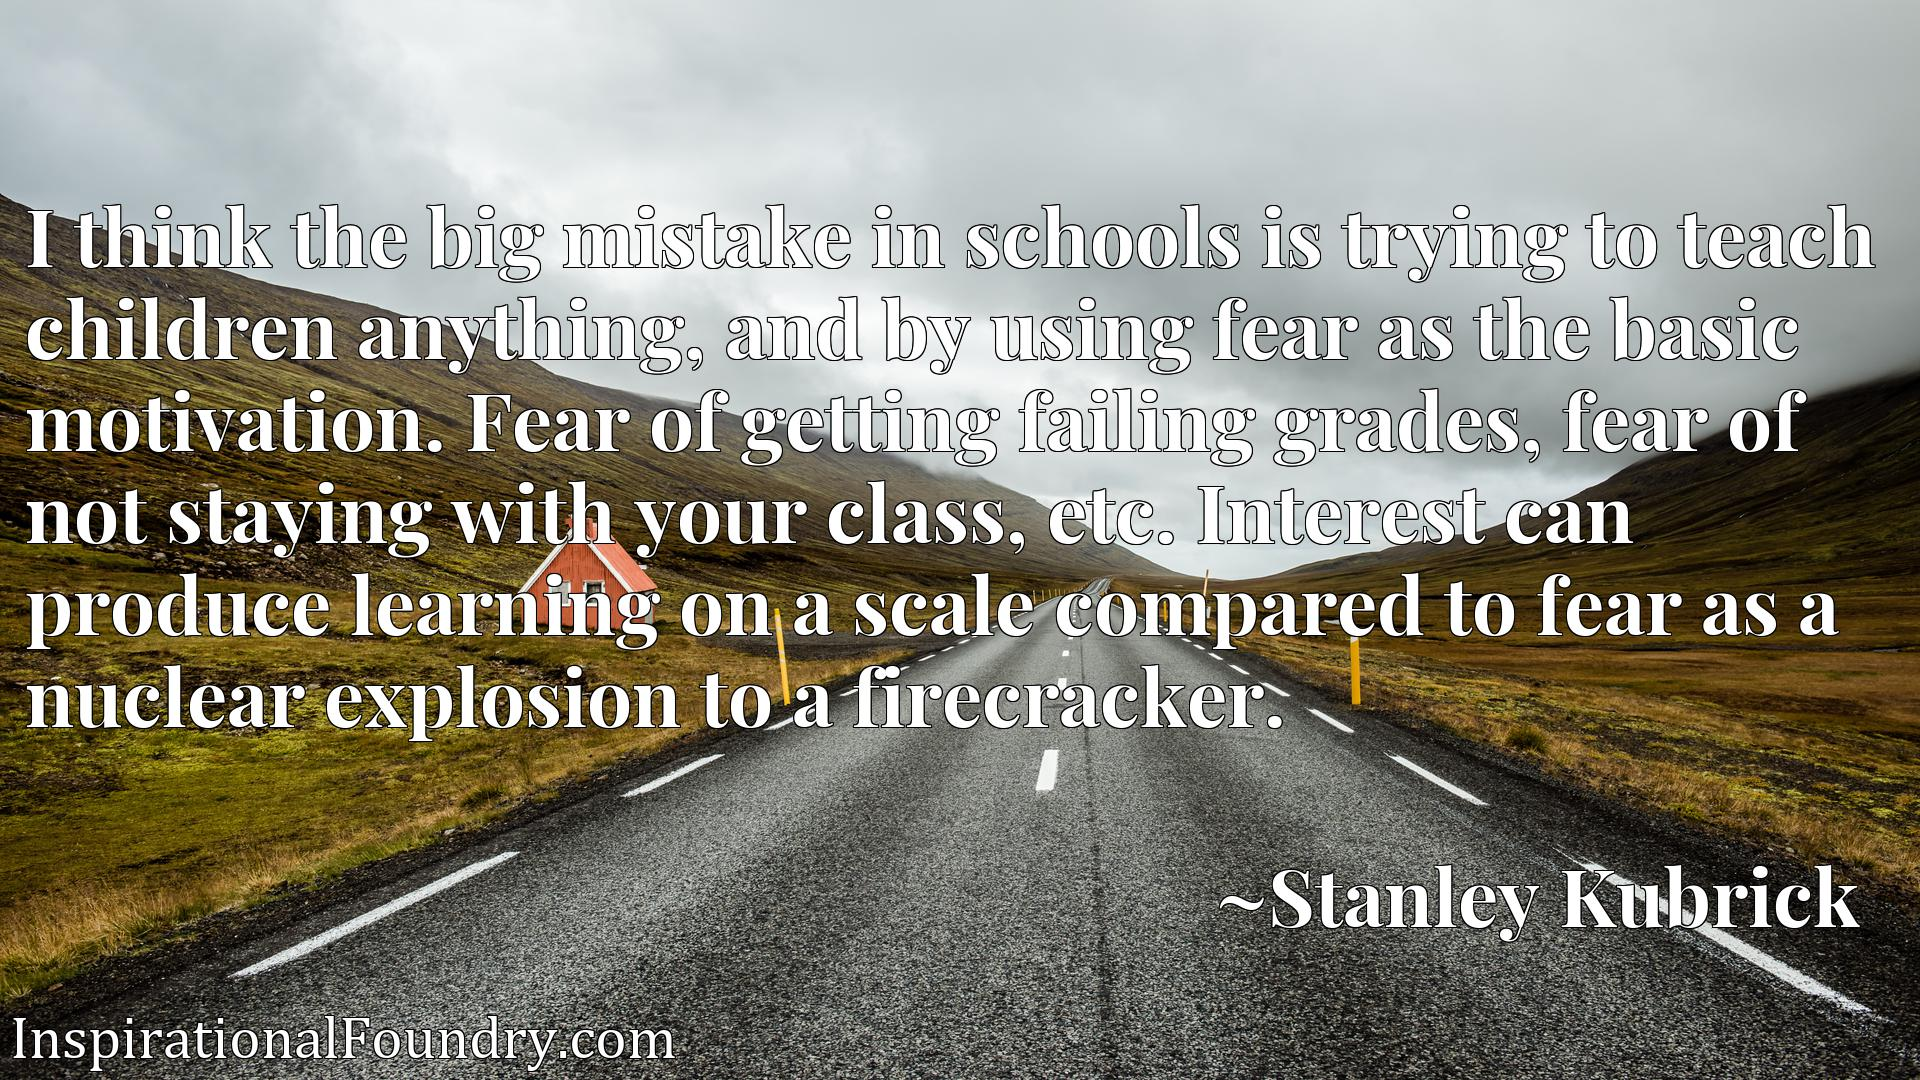 I think the big mistake in schools is trying to teach children anything, and by using fear as the basic motivation. Fear of getting failing grades, fear of not staying with your class, etc. Interest can produce learning on a scale compared to fear as a nuclear explosion to a firecracker.